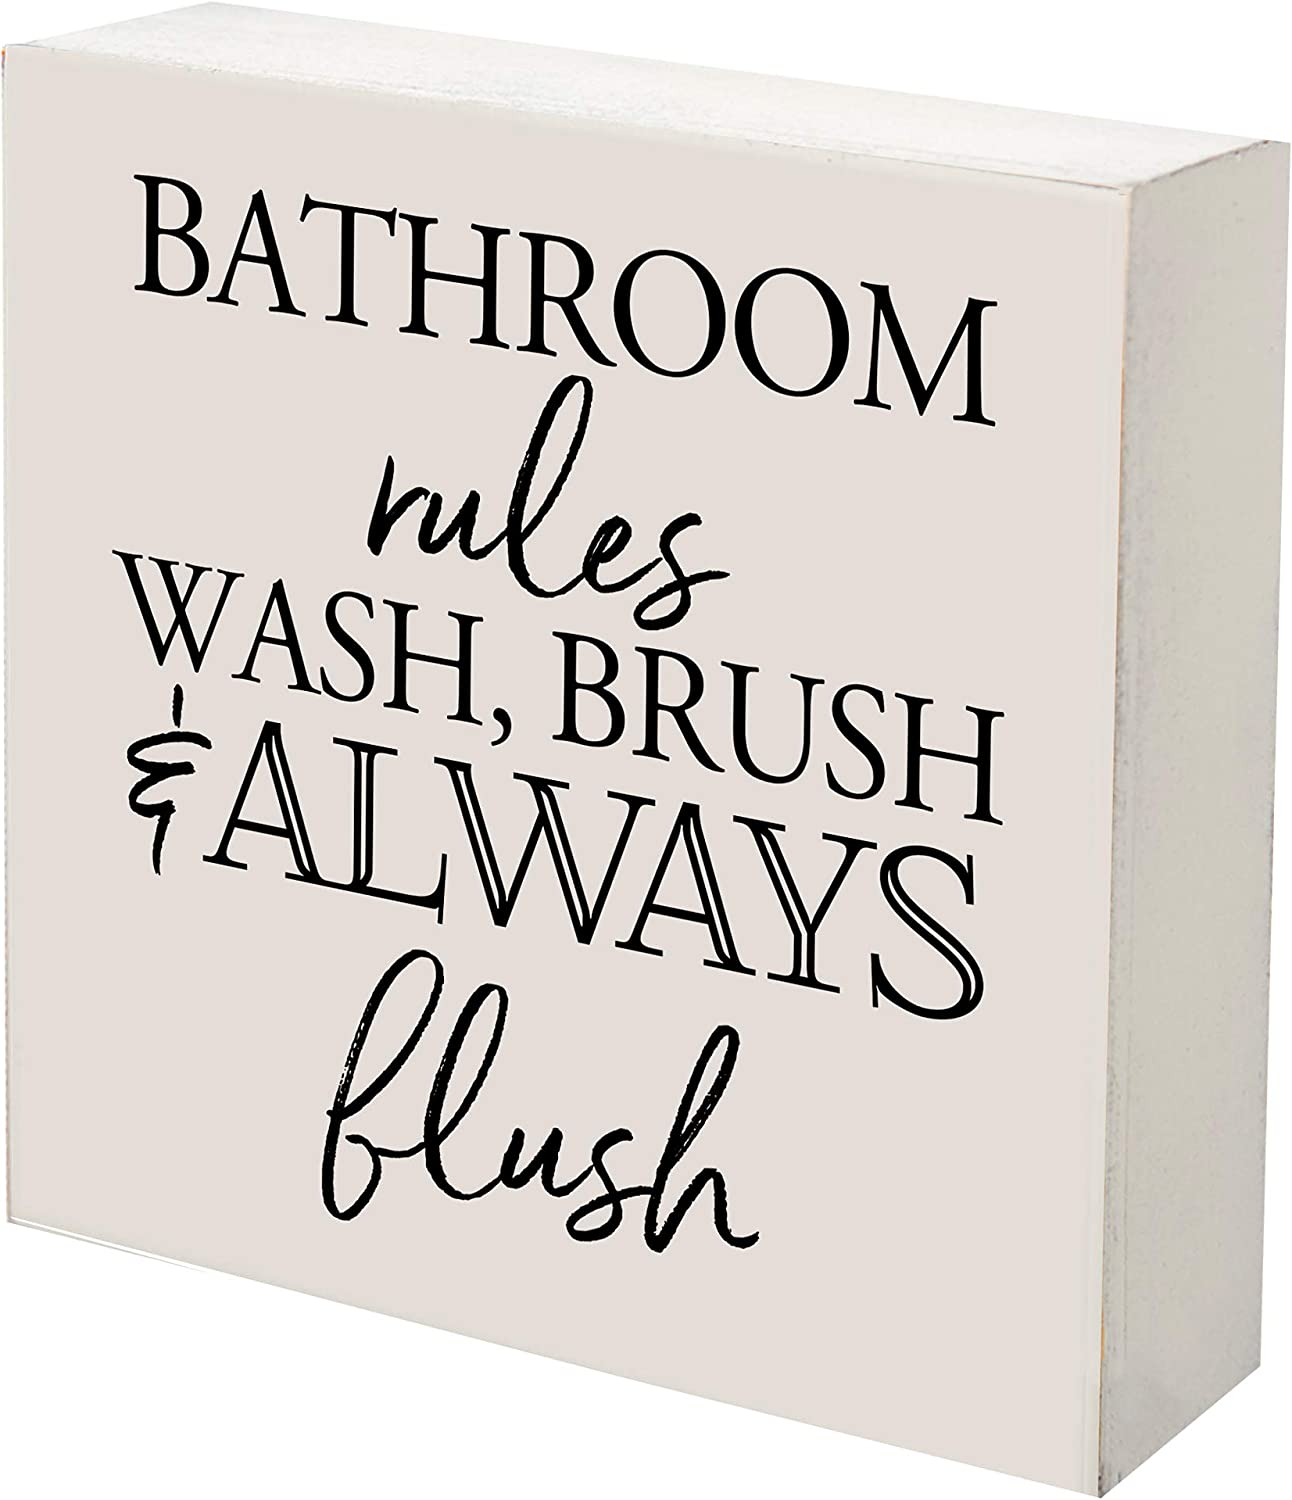 LifeSong Milestones Cute Farmhouse Bathroom Signs Rustic Wooden Box Sign-Bath Signs for Bathroom Decor Funny Quotes for Men Women-Modern Bathroom Wall Art Hanging Decorations Wash,Brush Flush(White)